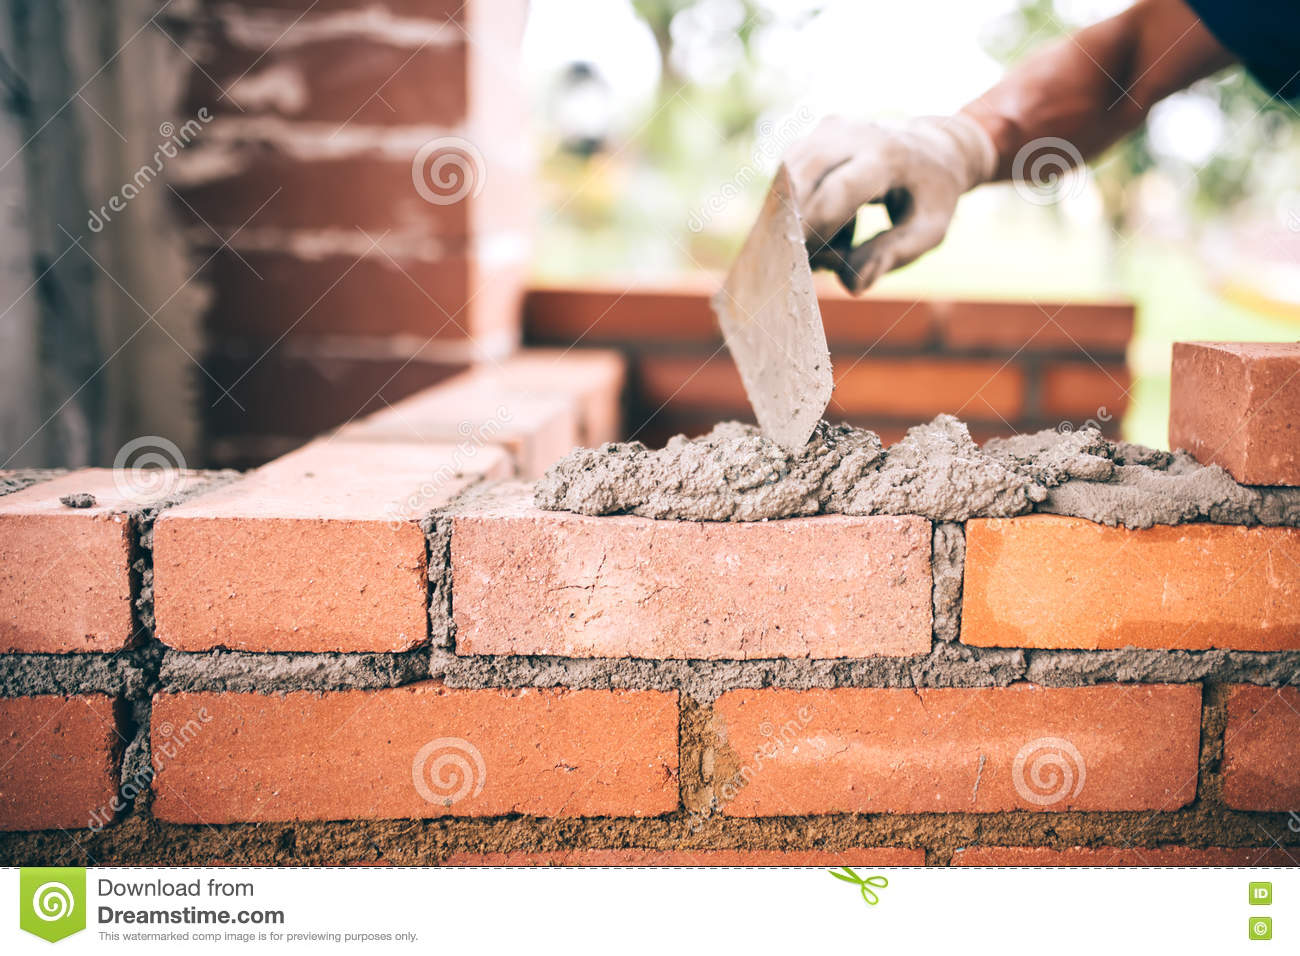 Construction bricklayer worker building walls with bricks, mortar and putty knife